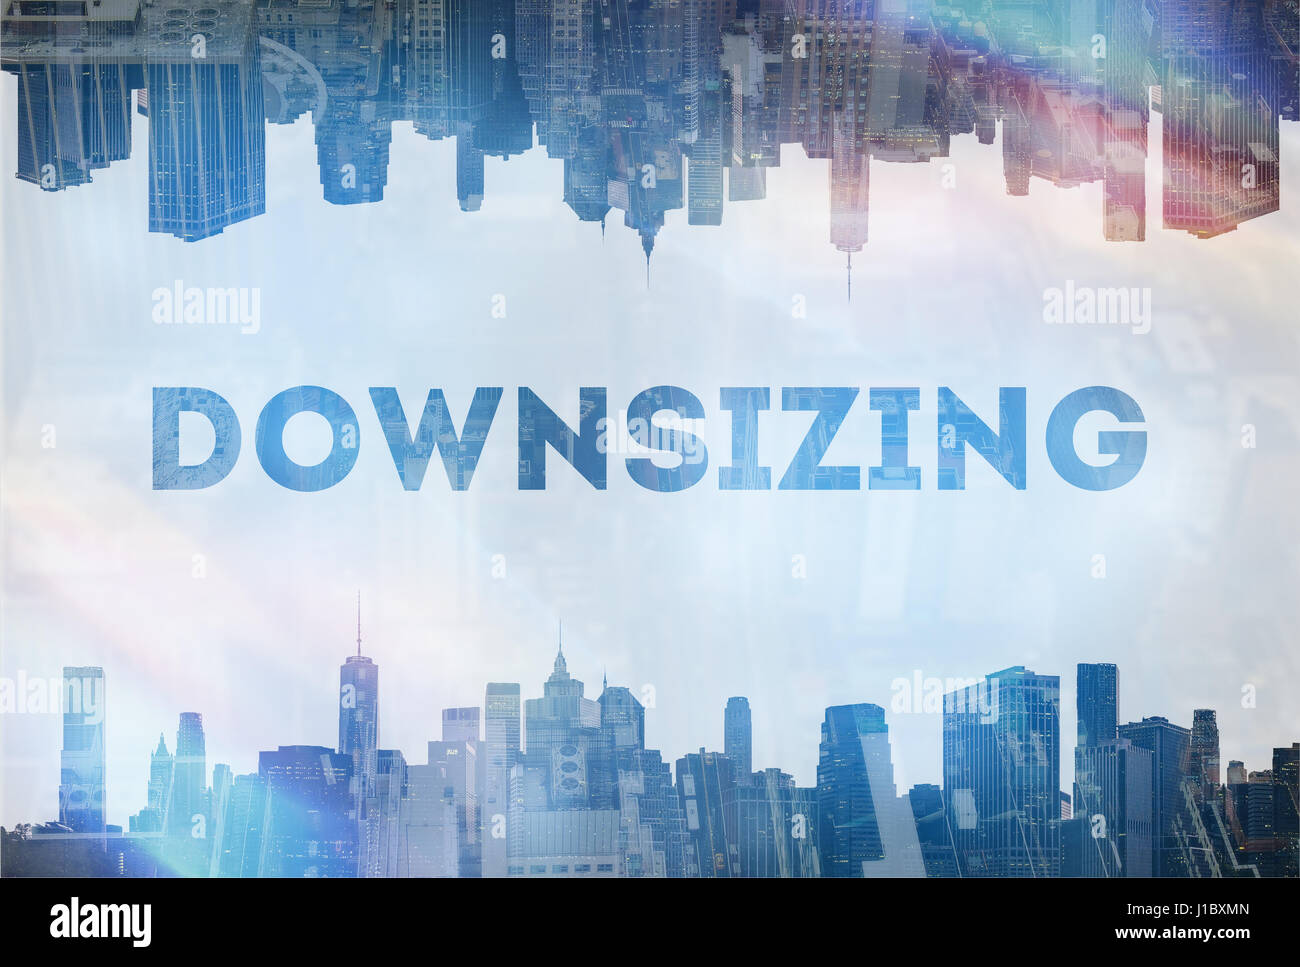 Downsizing concept image - Stock Image